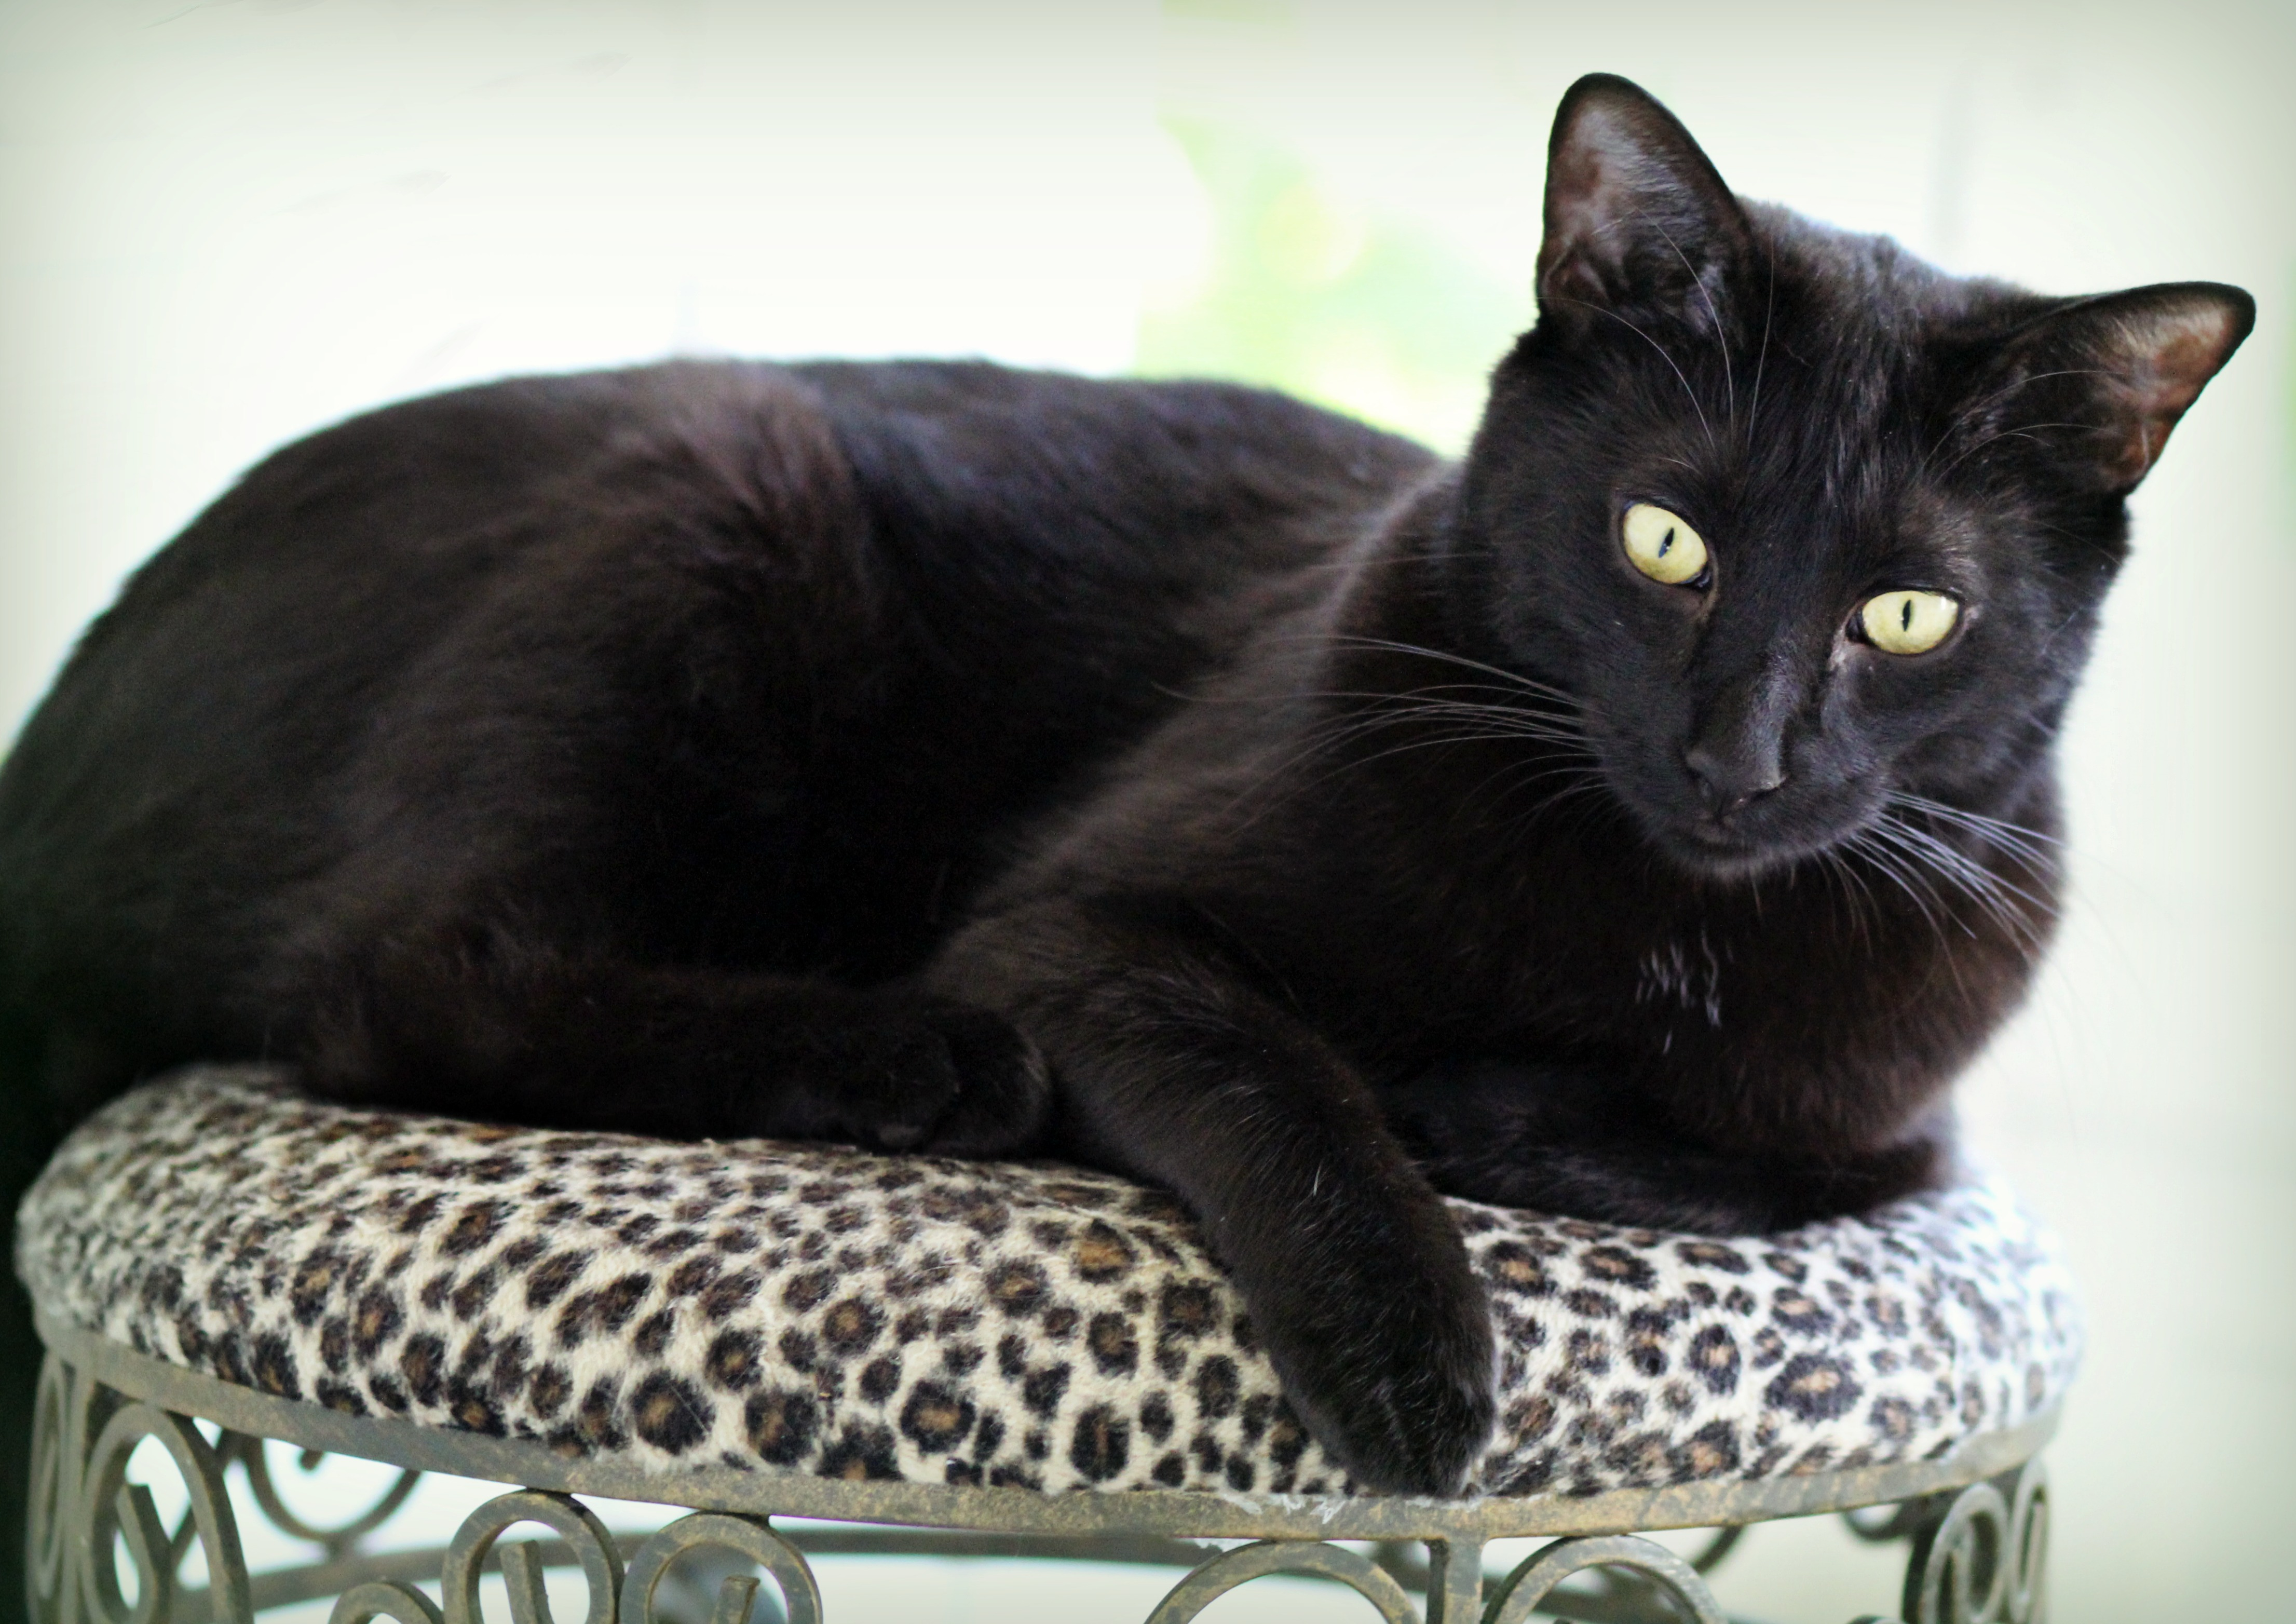 Fonzythe Black Gorgeous Cat